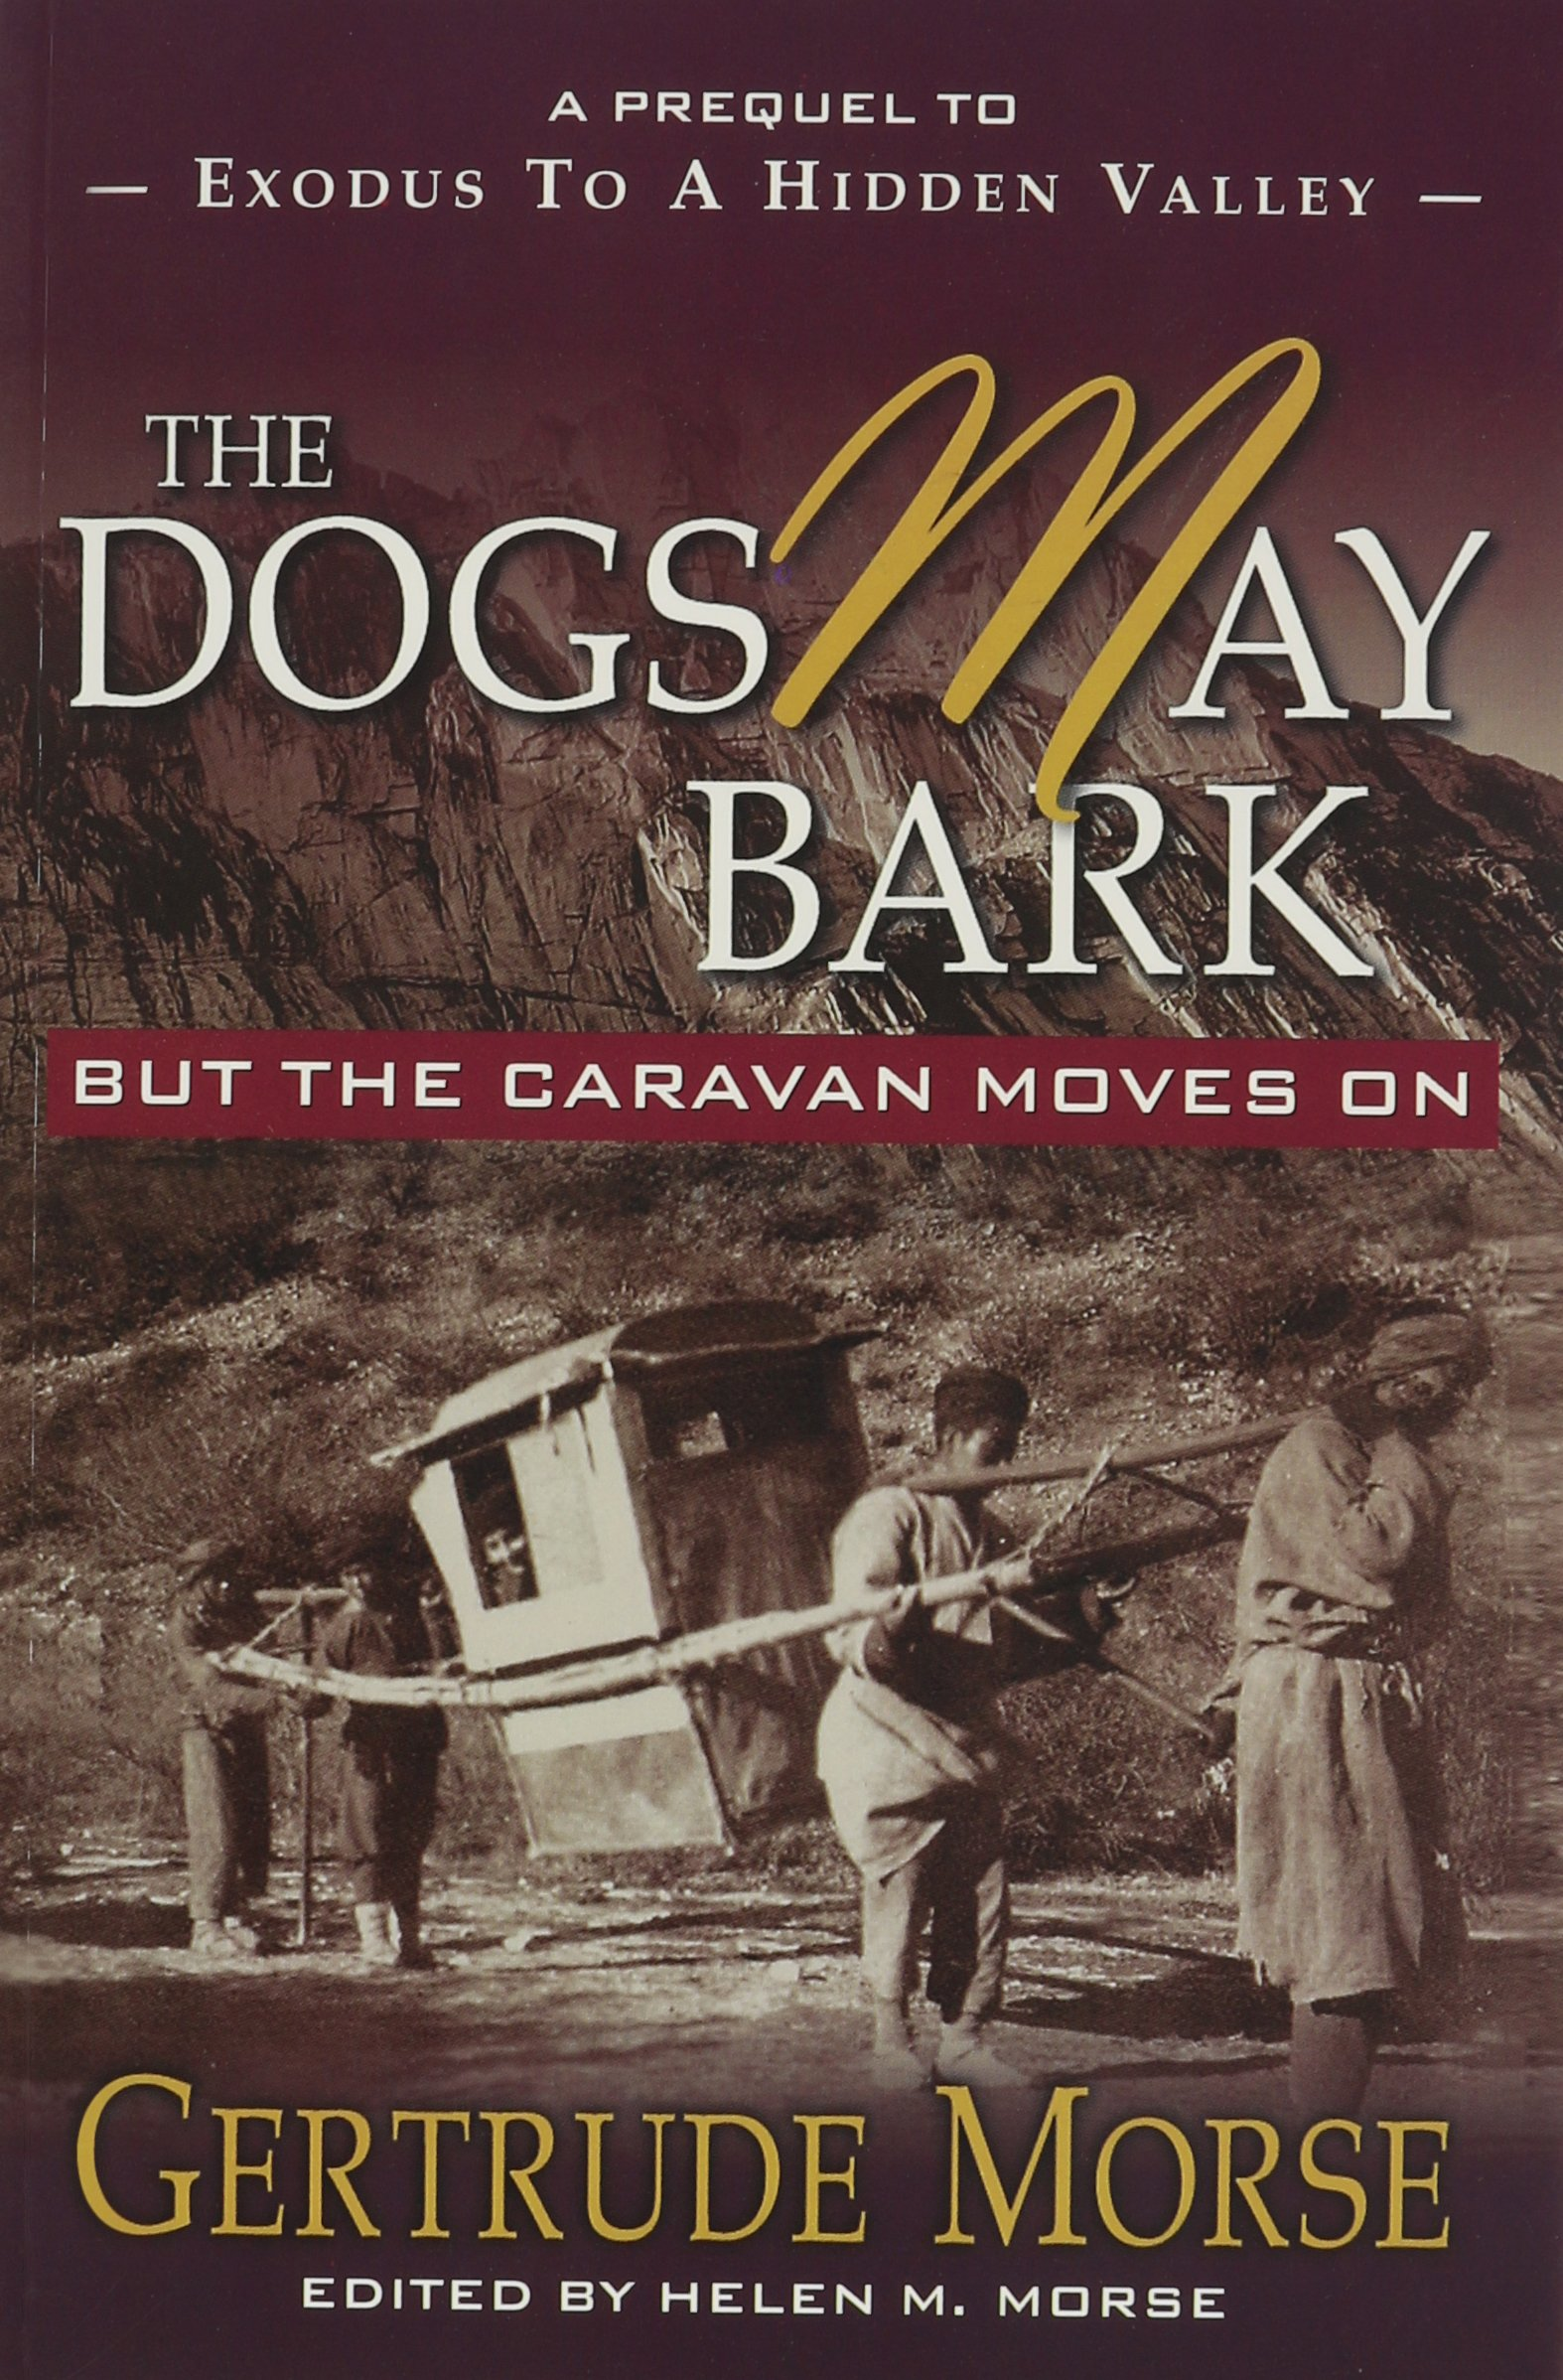 The press barks, and the caravan goes to itself ..., goes 48